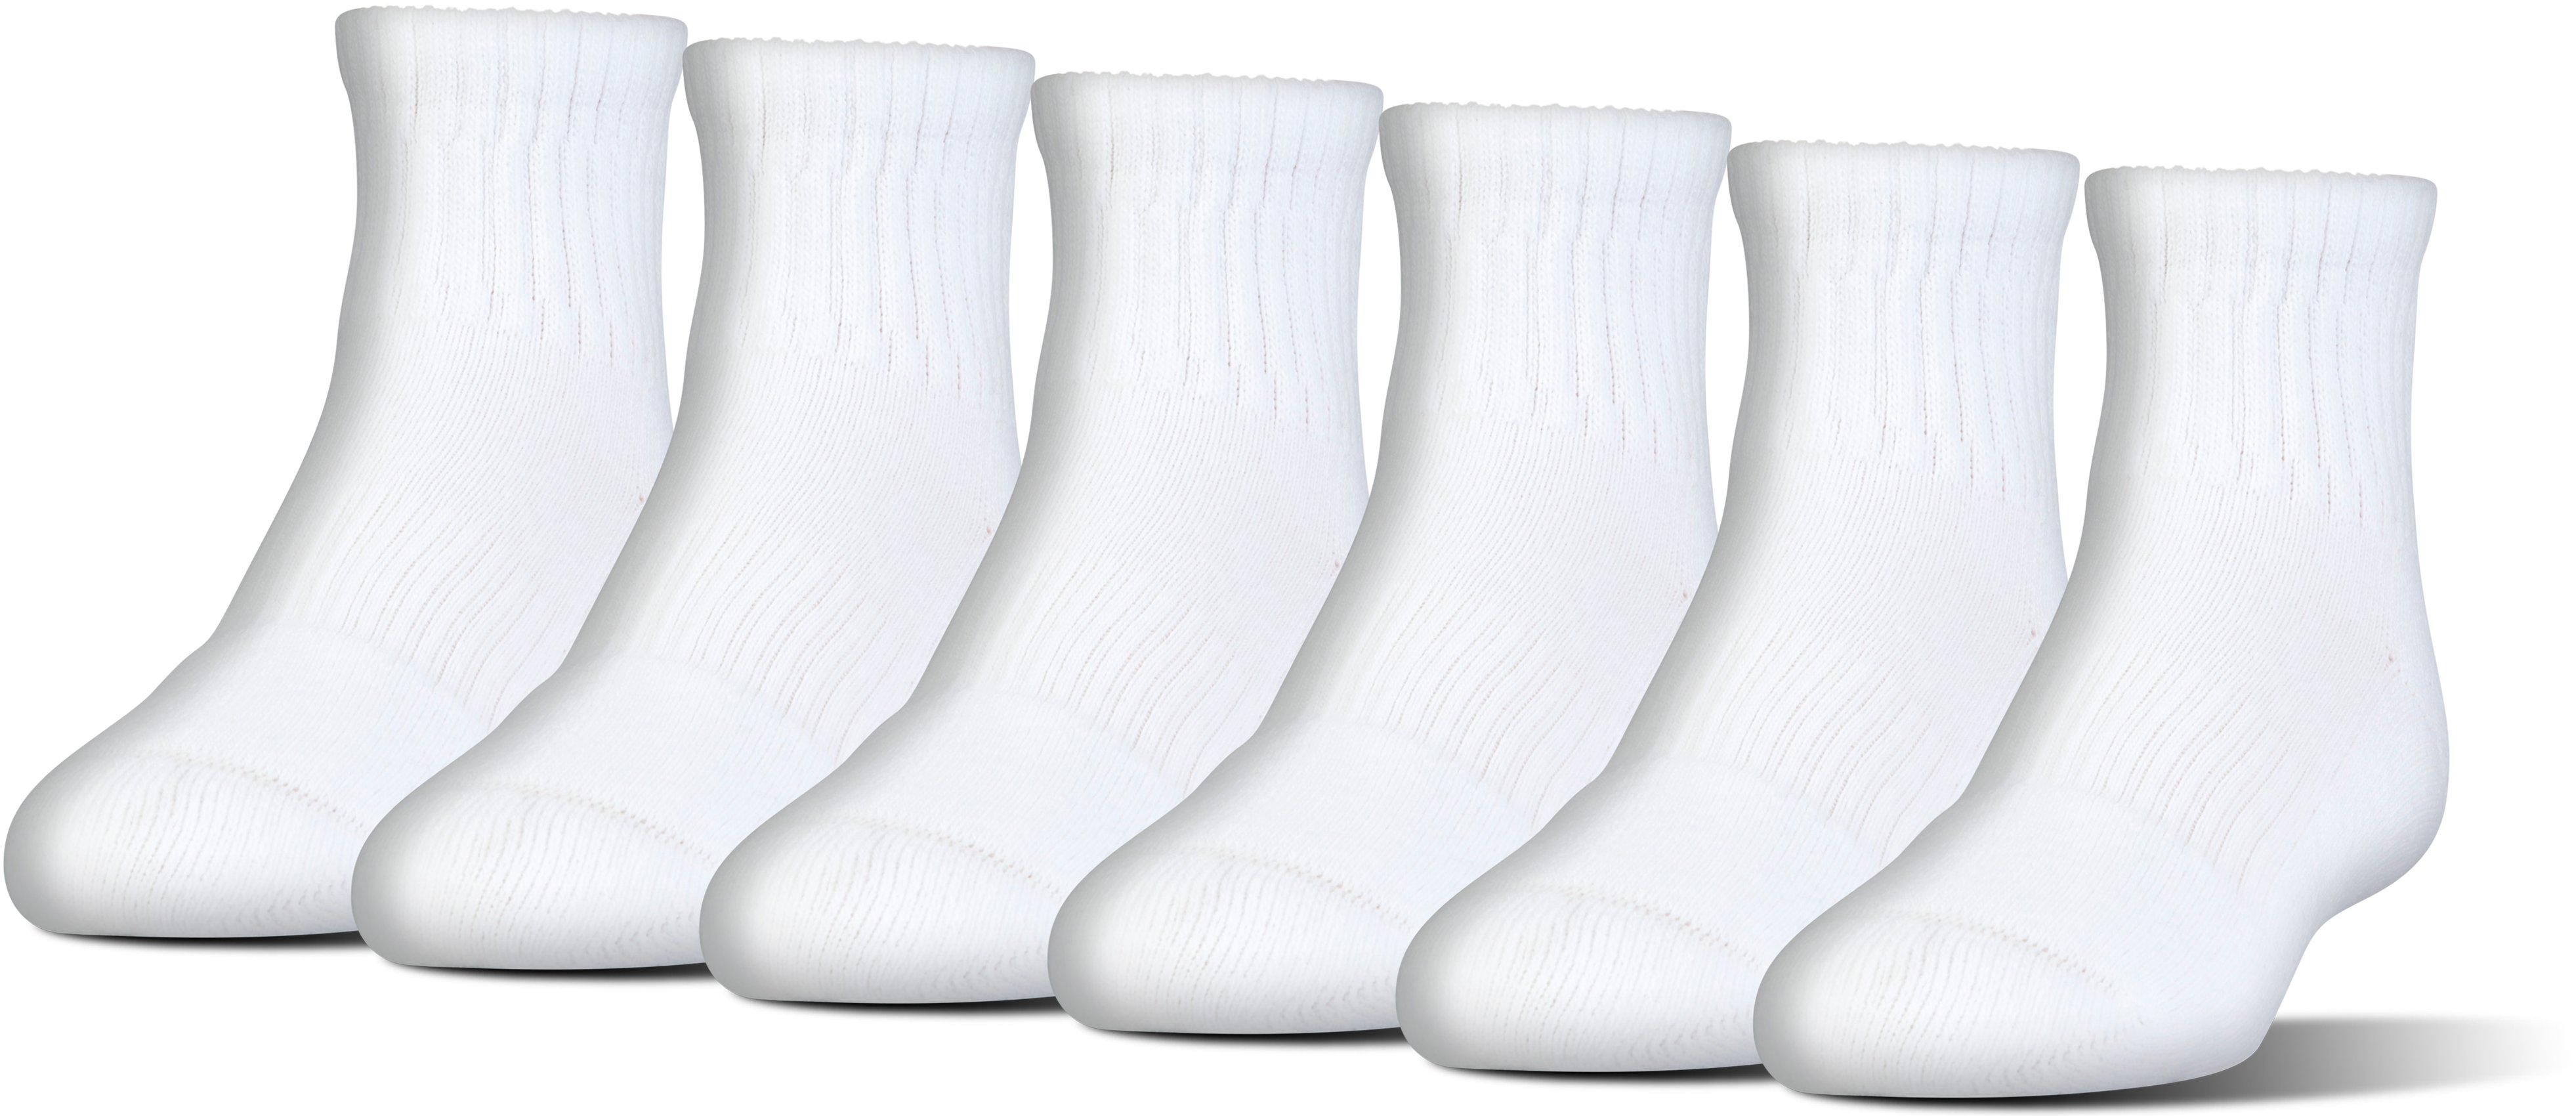 UA Charged Cotton® 2.0 Quarter Length Socks – 6-Pack, White